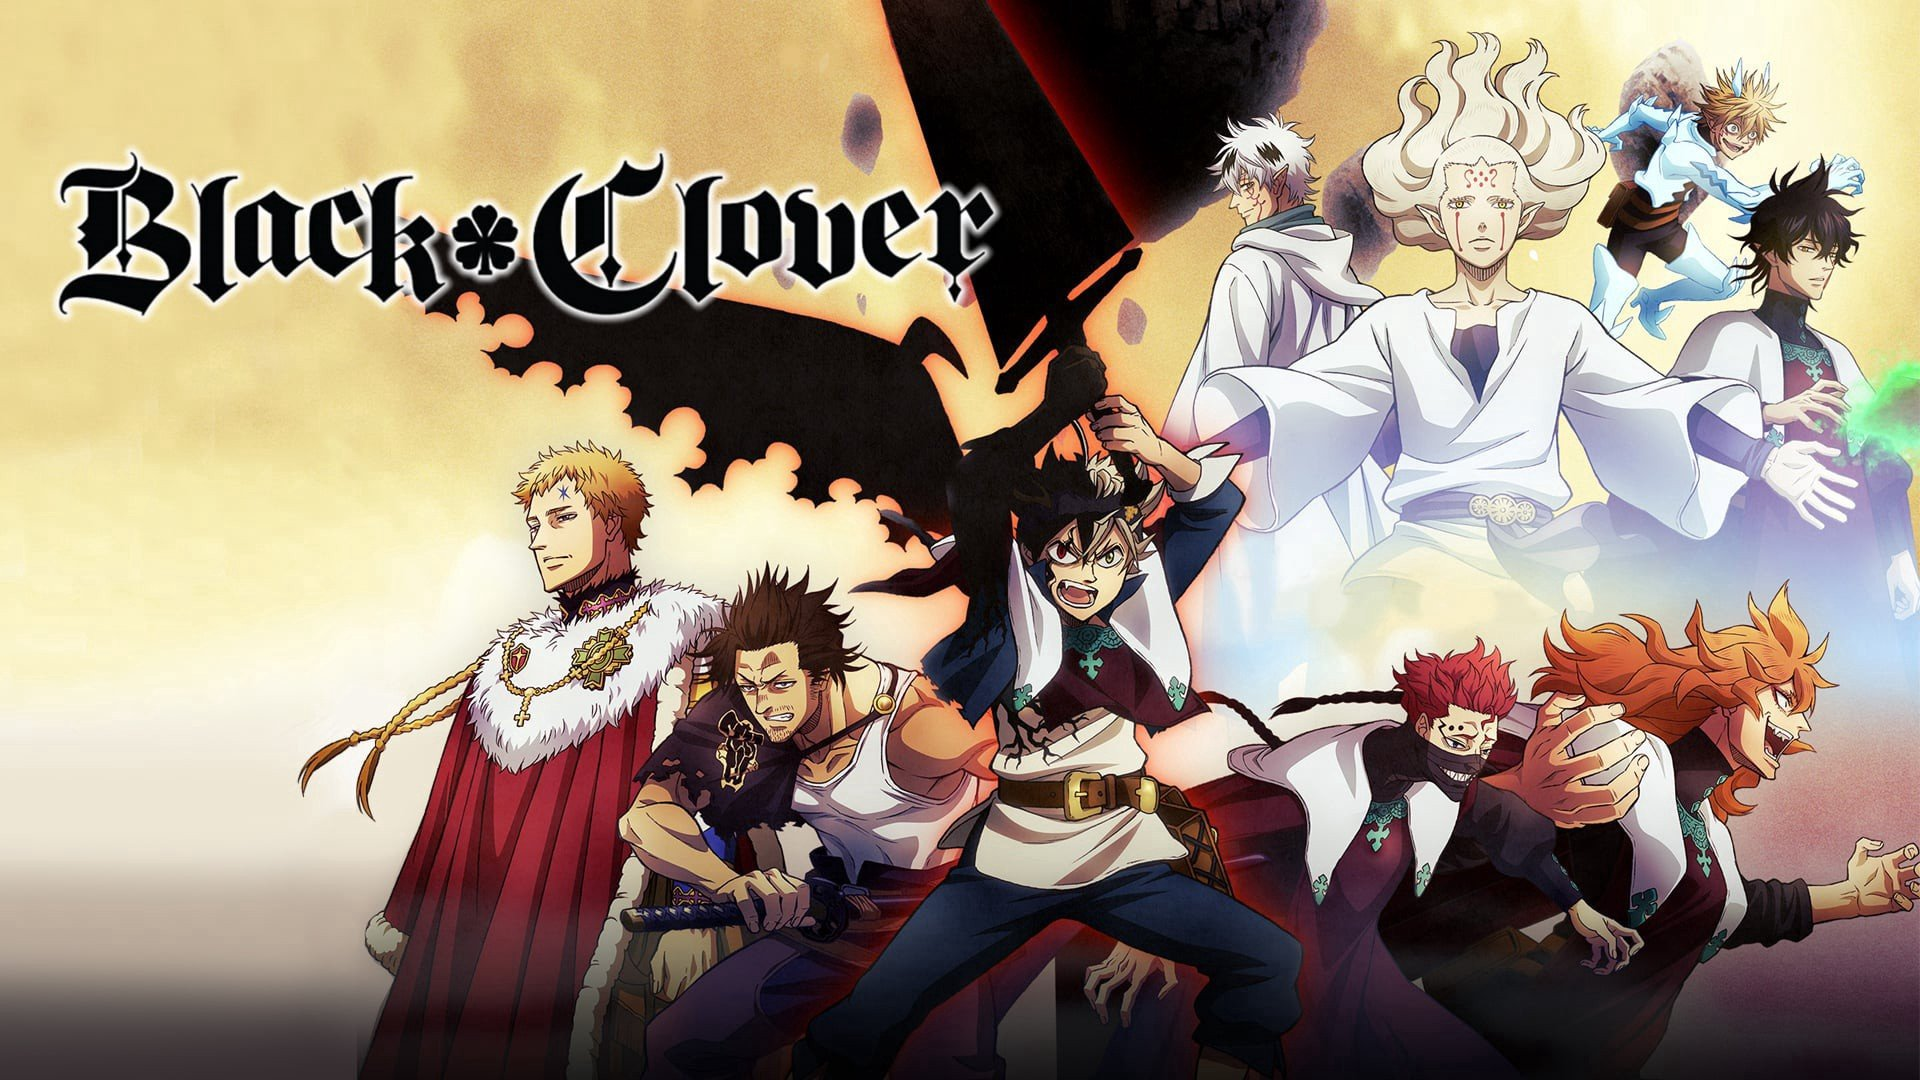 Black Clover Chapter 271 Release Date, Time and Read Online